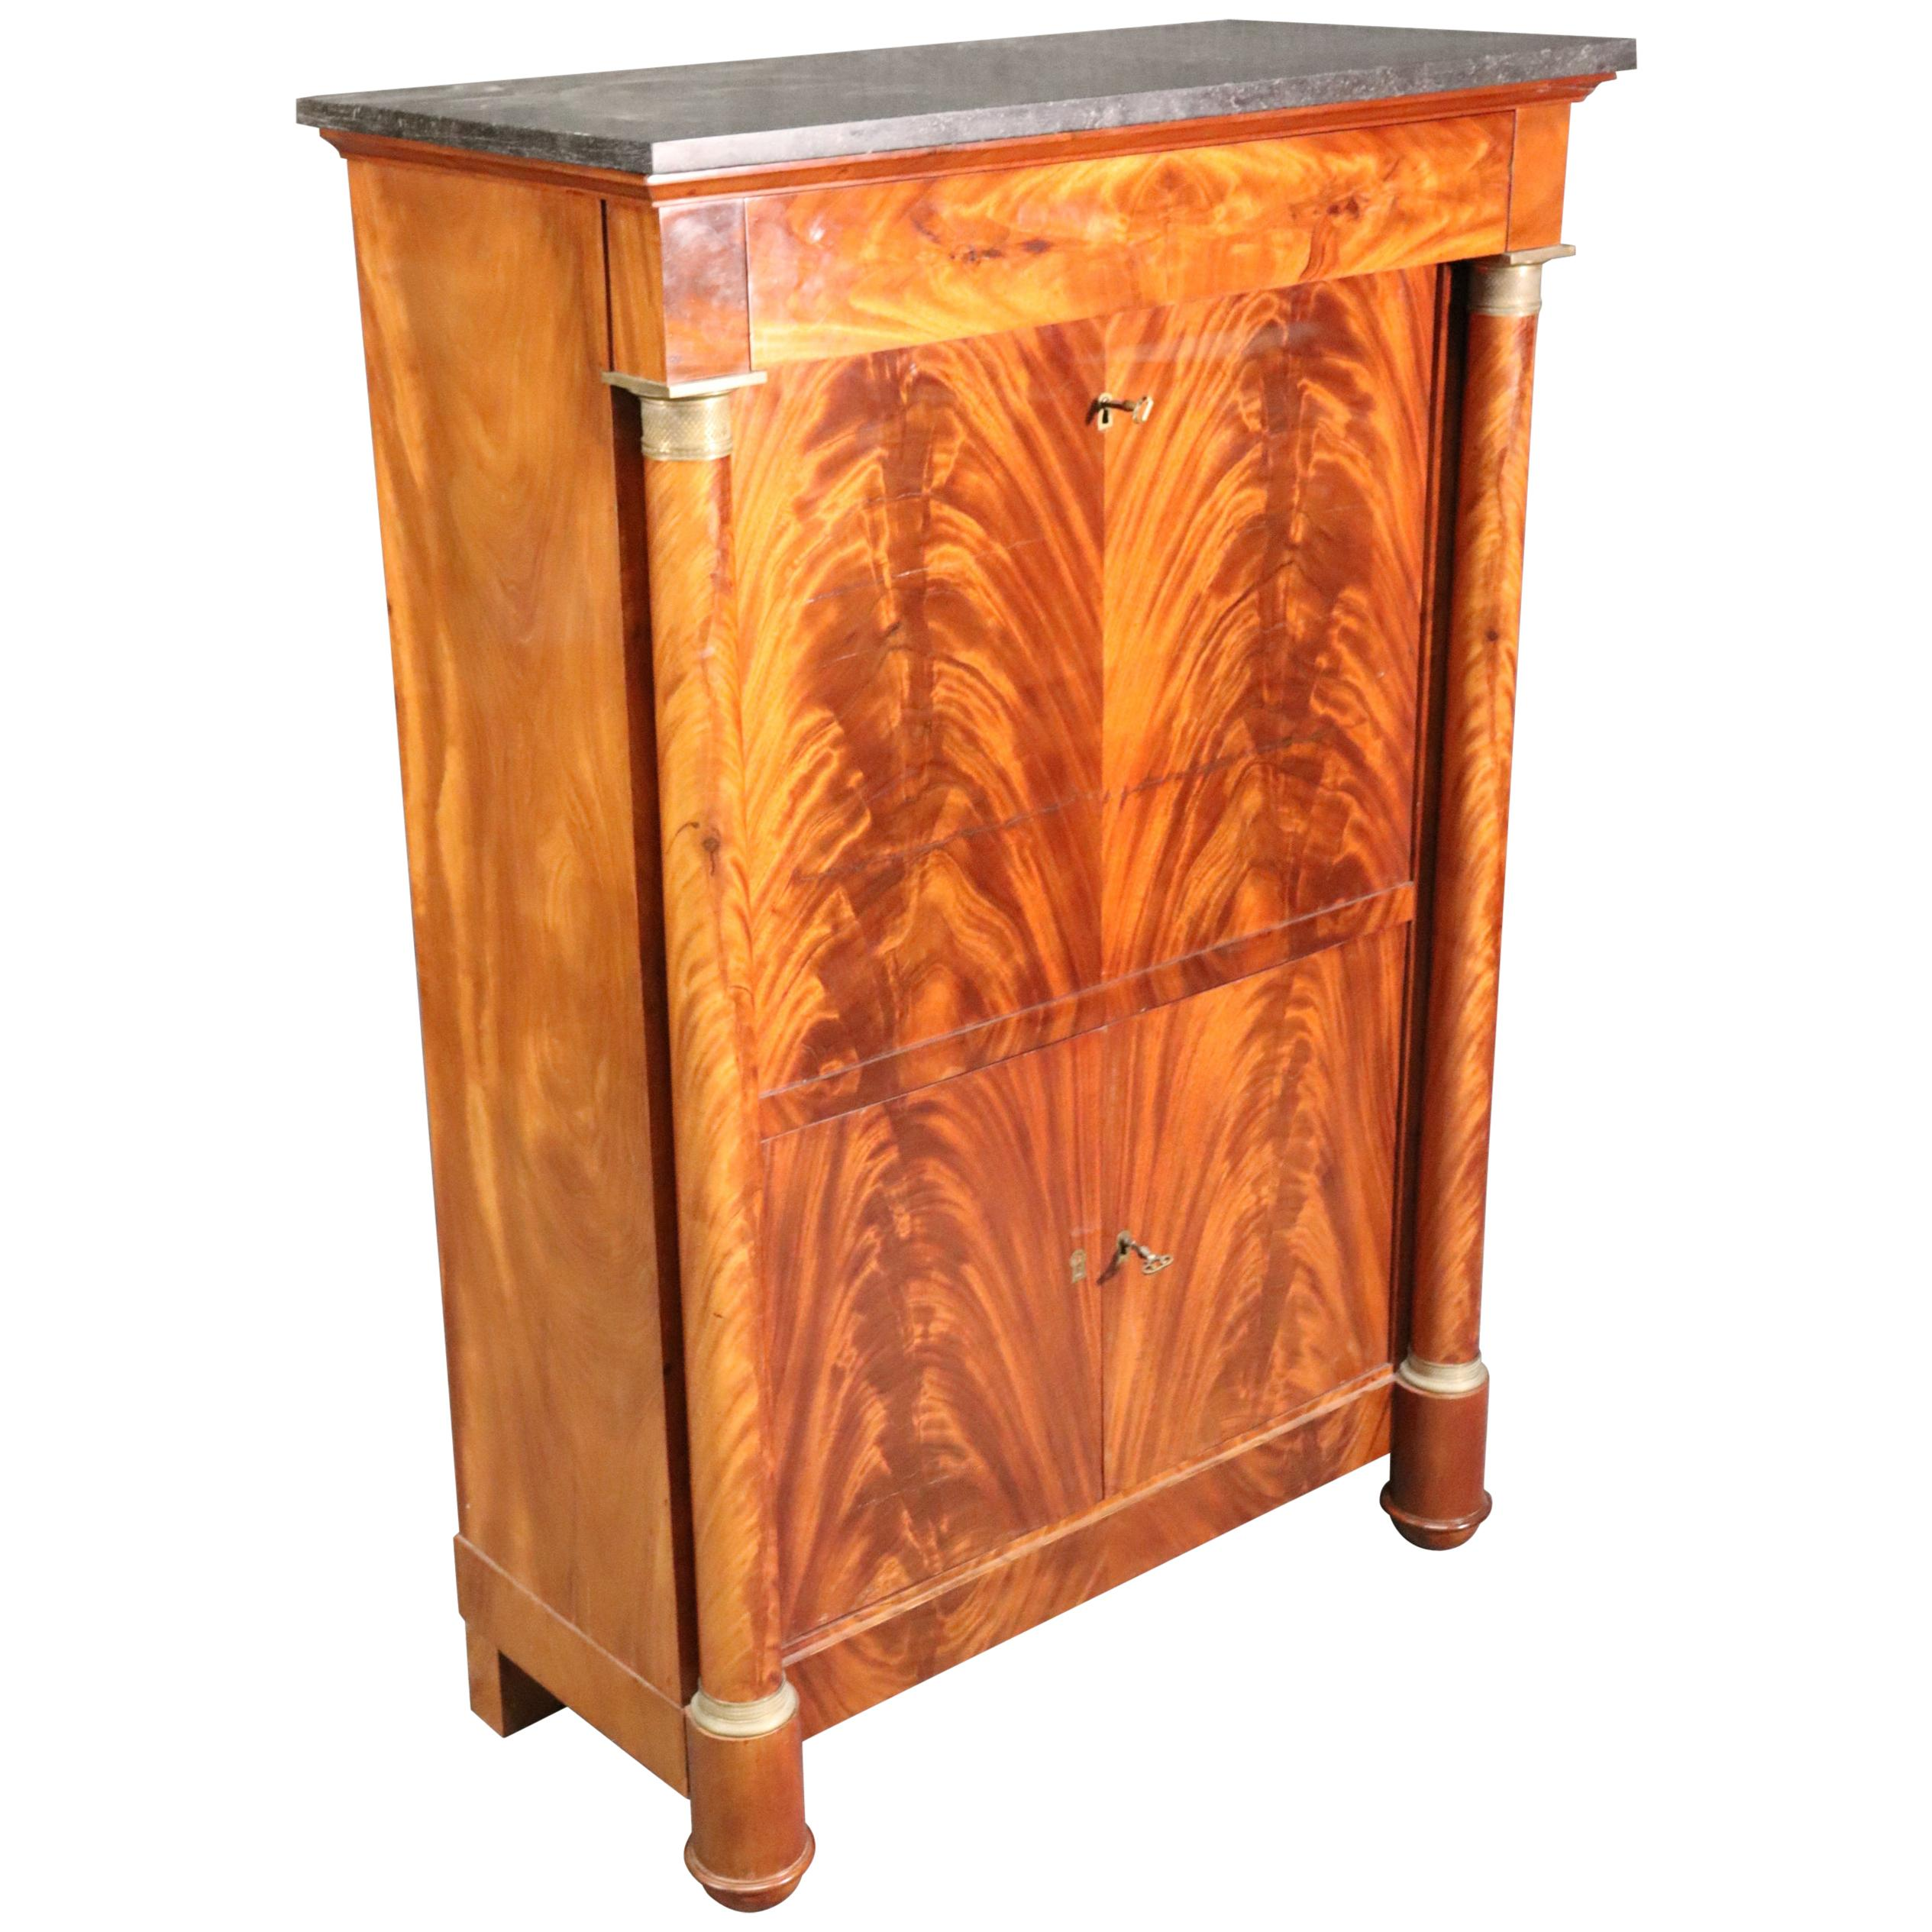 French Empire Style Flame Mahogany Secretaire A'abttant Desk C1930